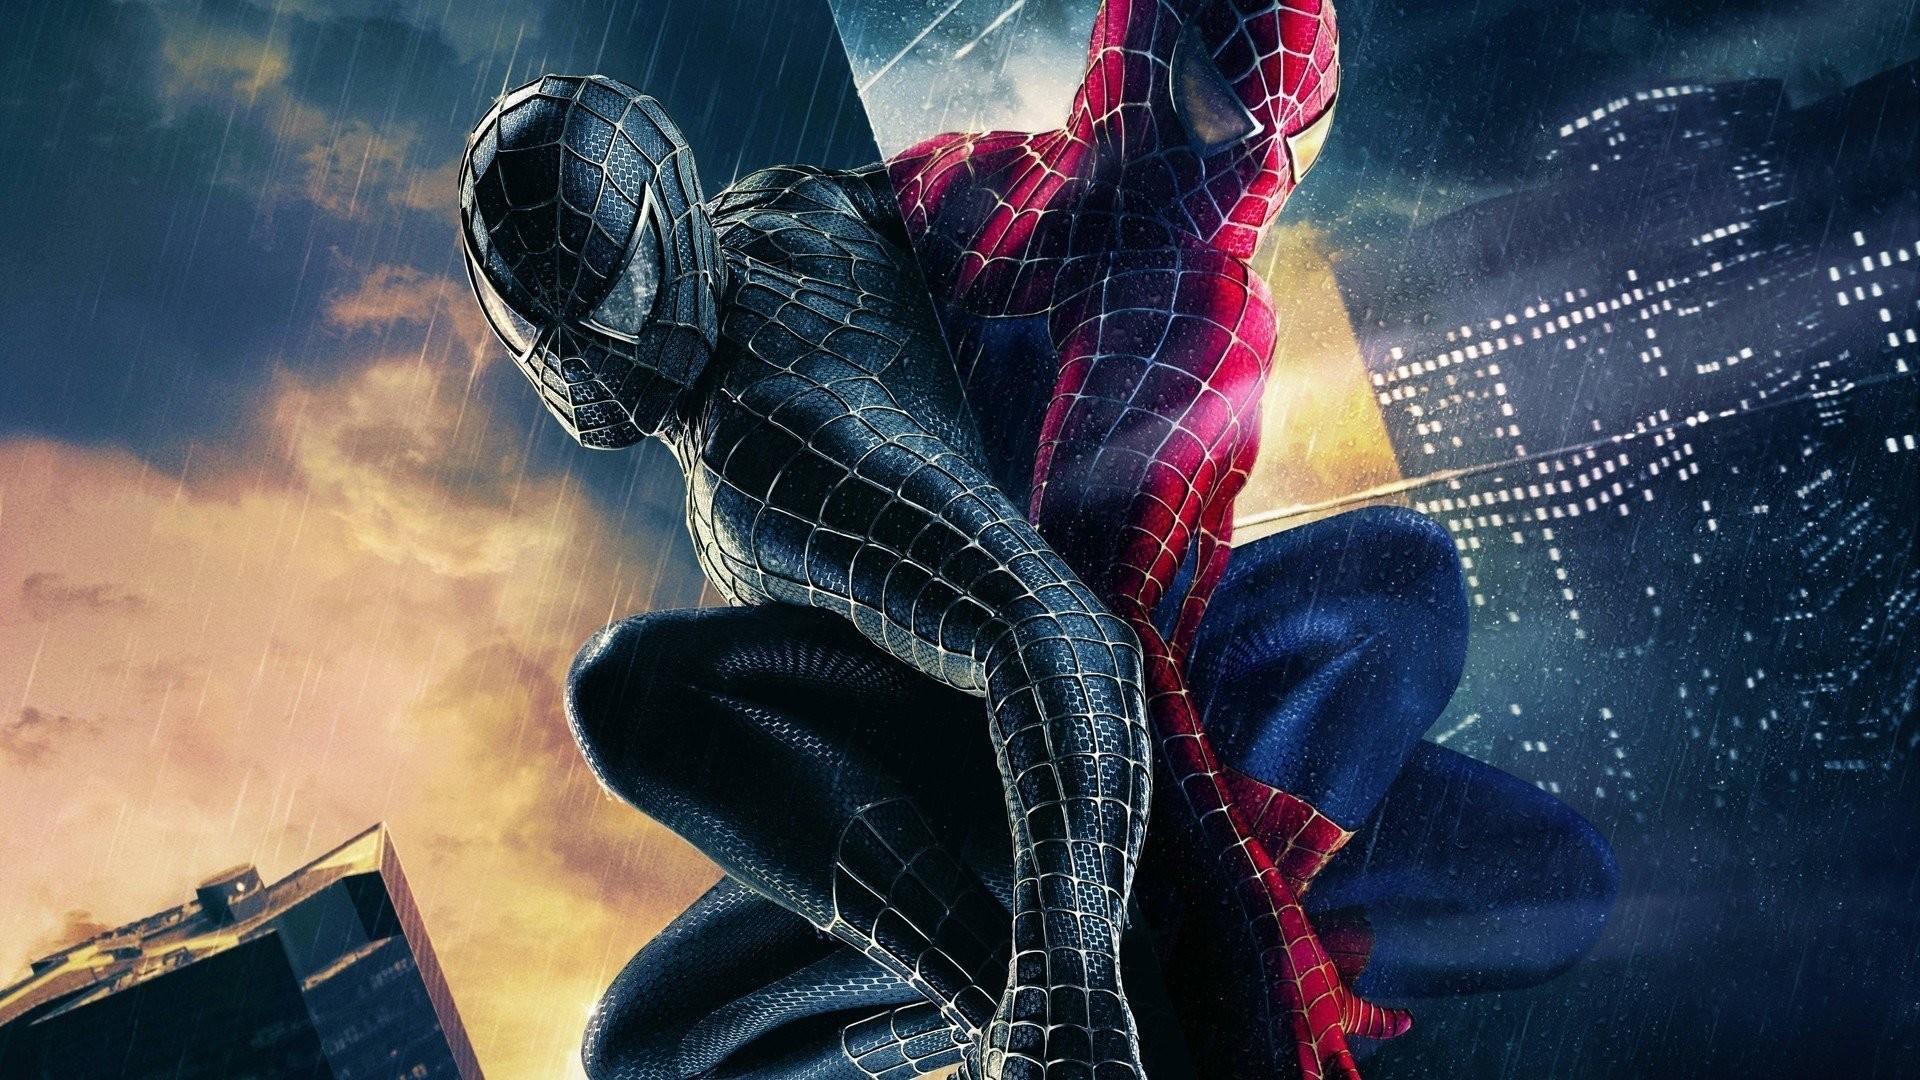 Spiderman Hd Wallpaper 1920x1080 81 Images